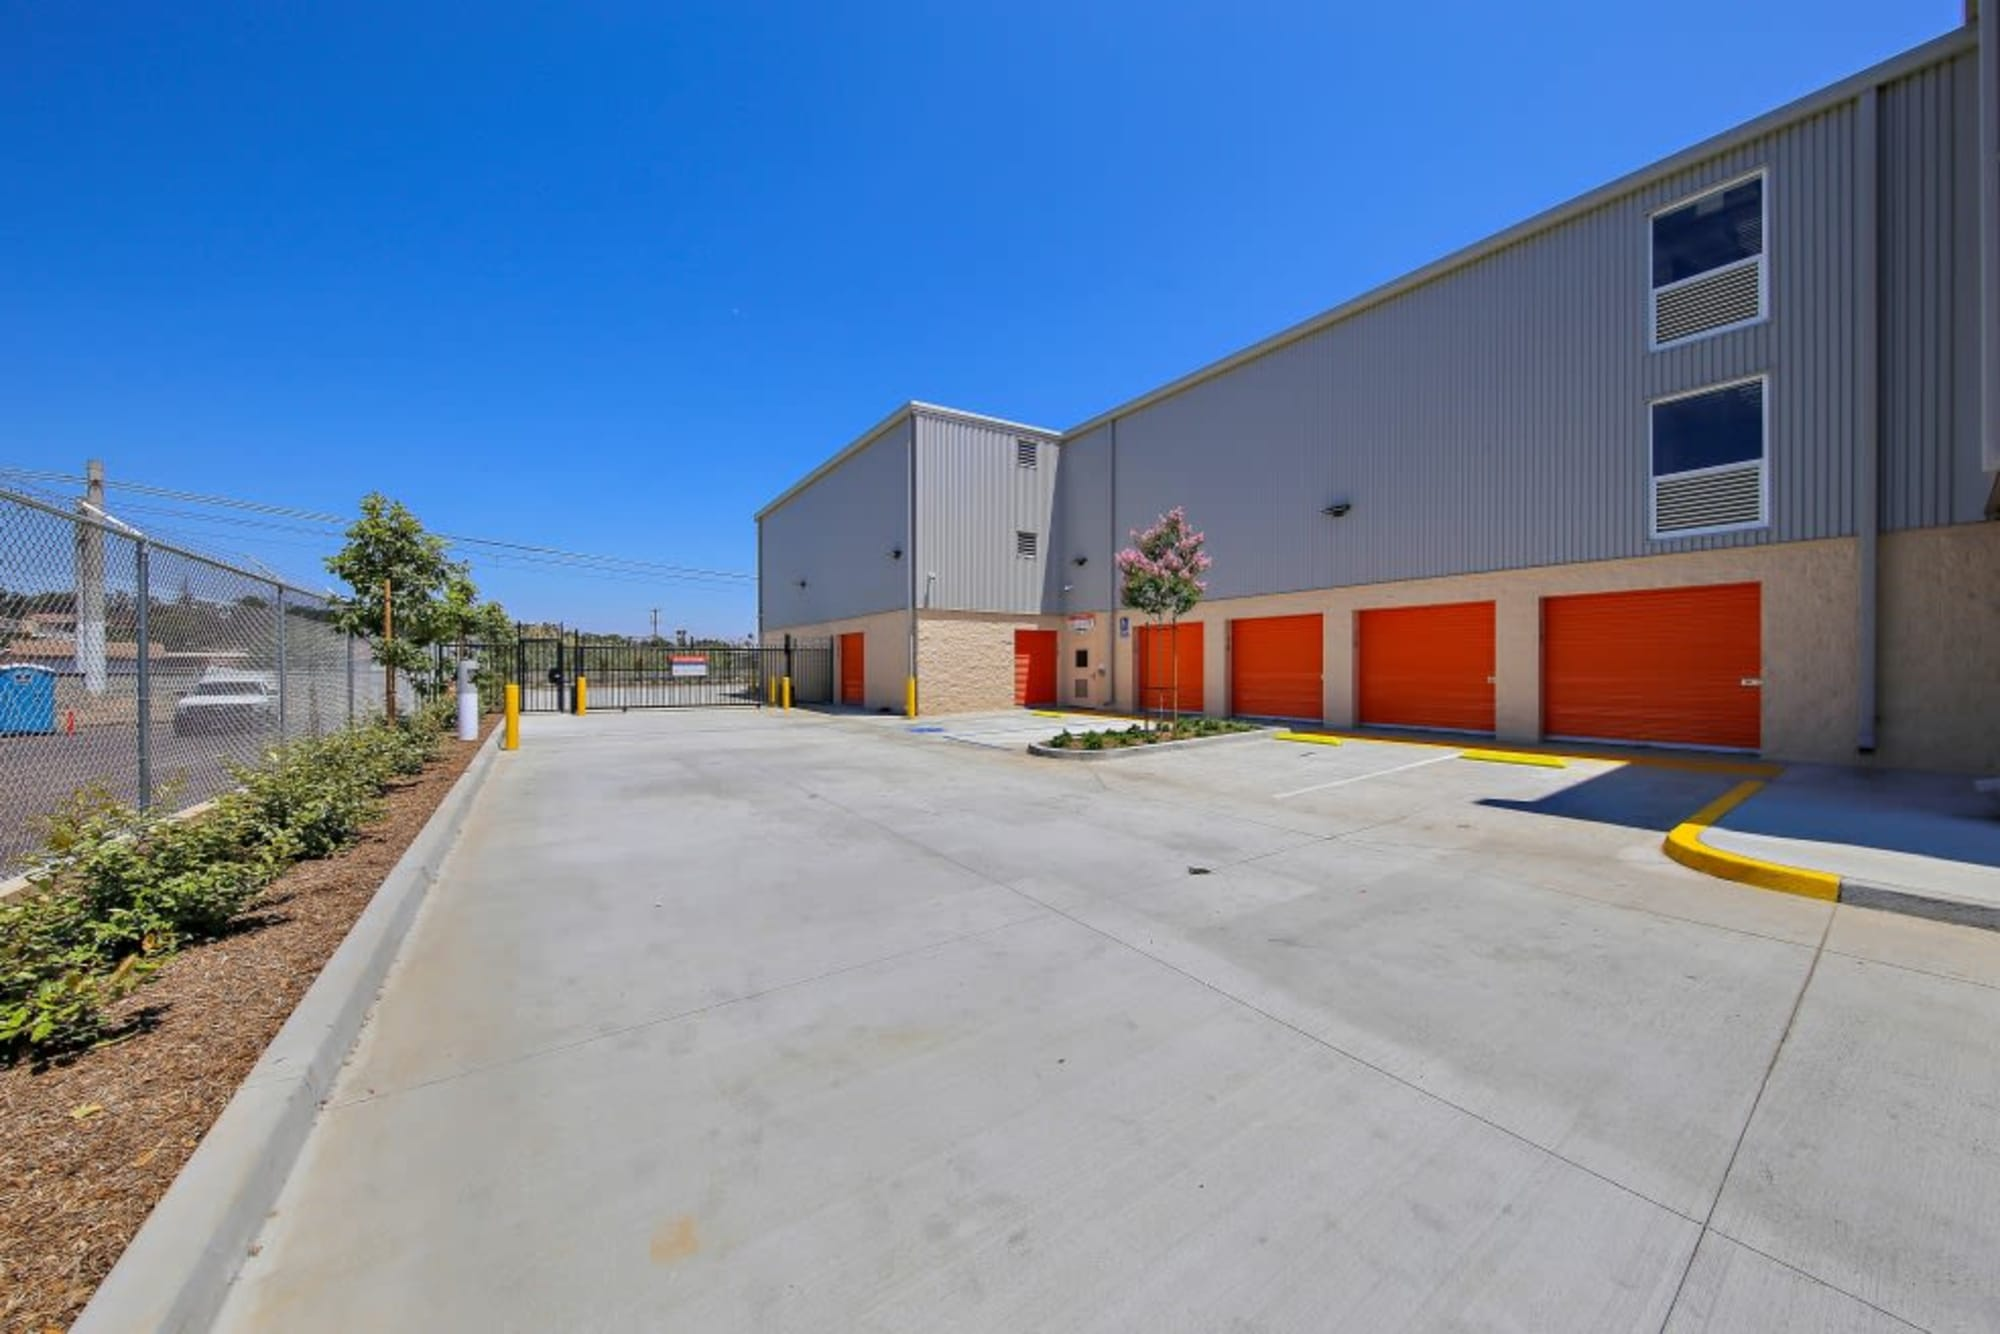 Exterior units and a wide driveway at A-1 Self Storage in San Diego, California